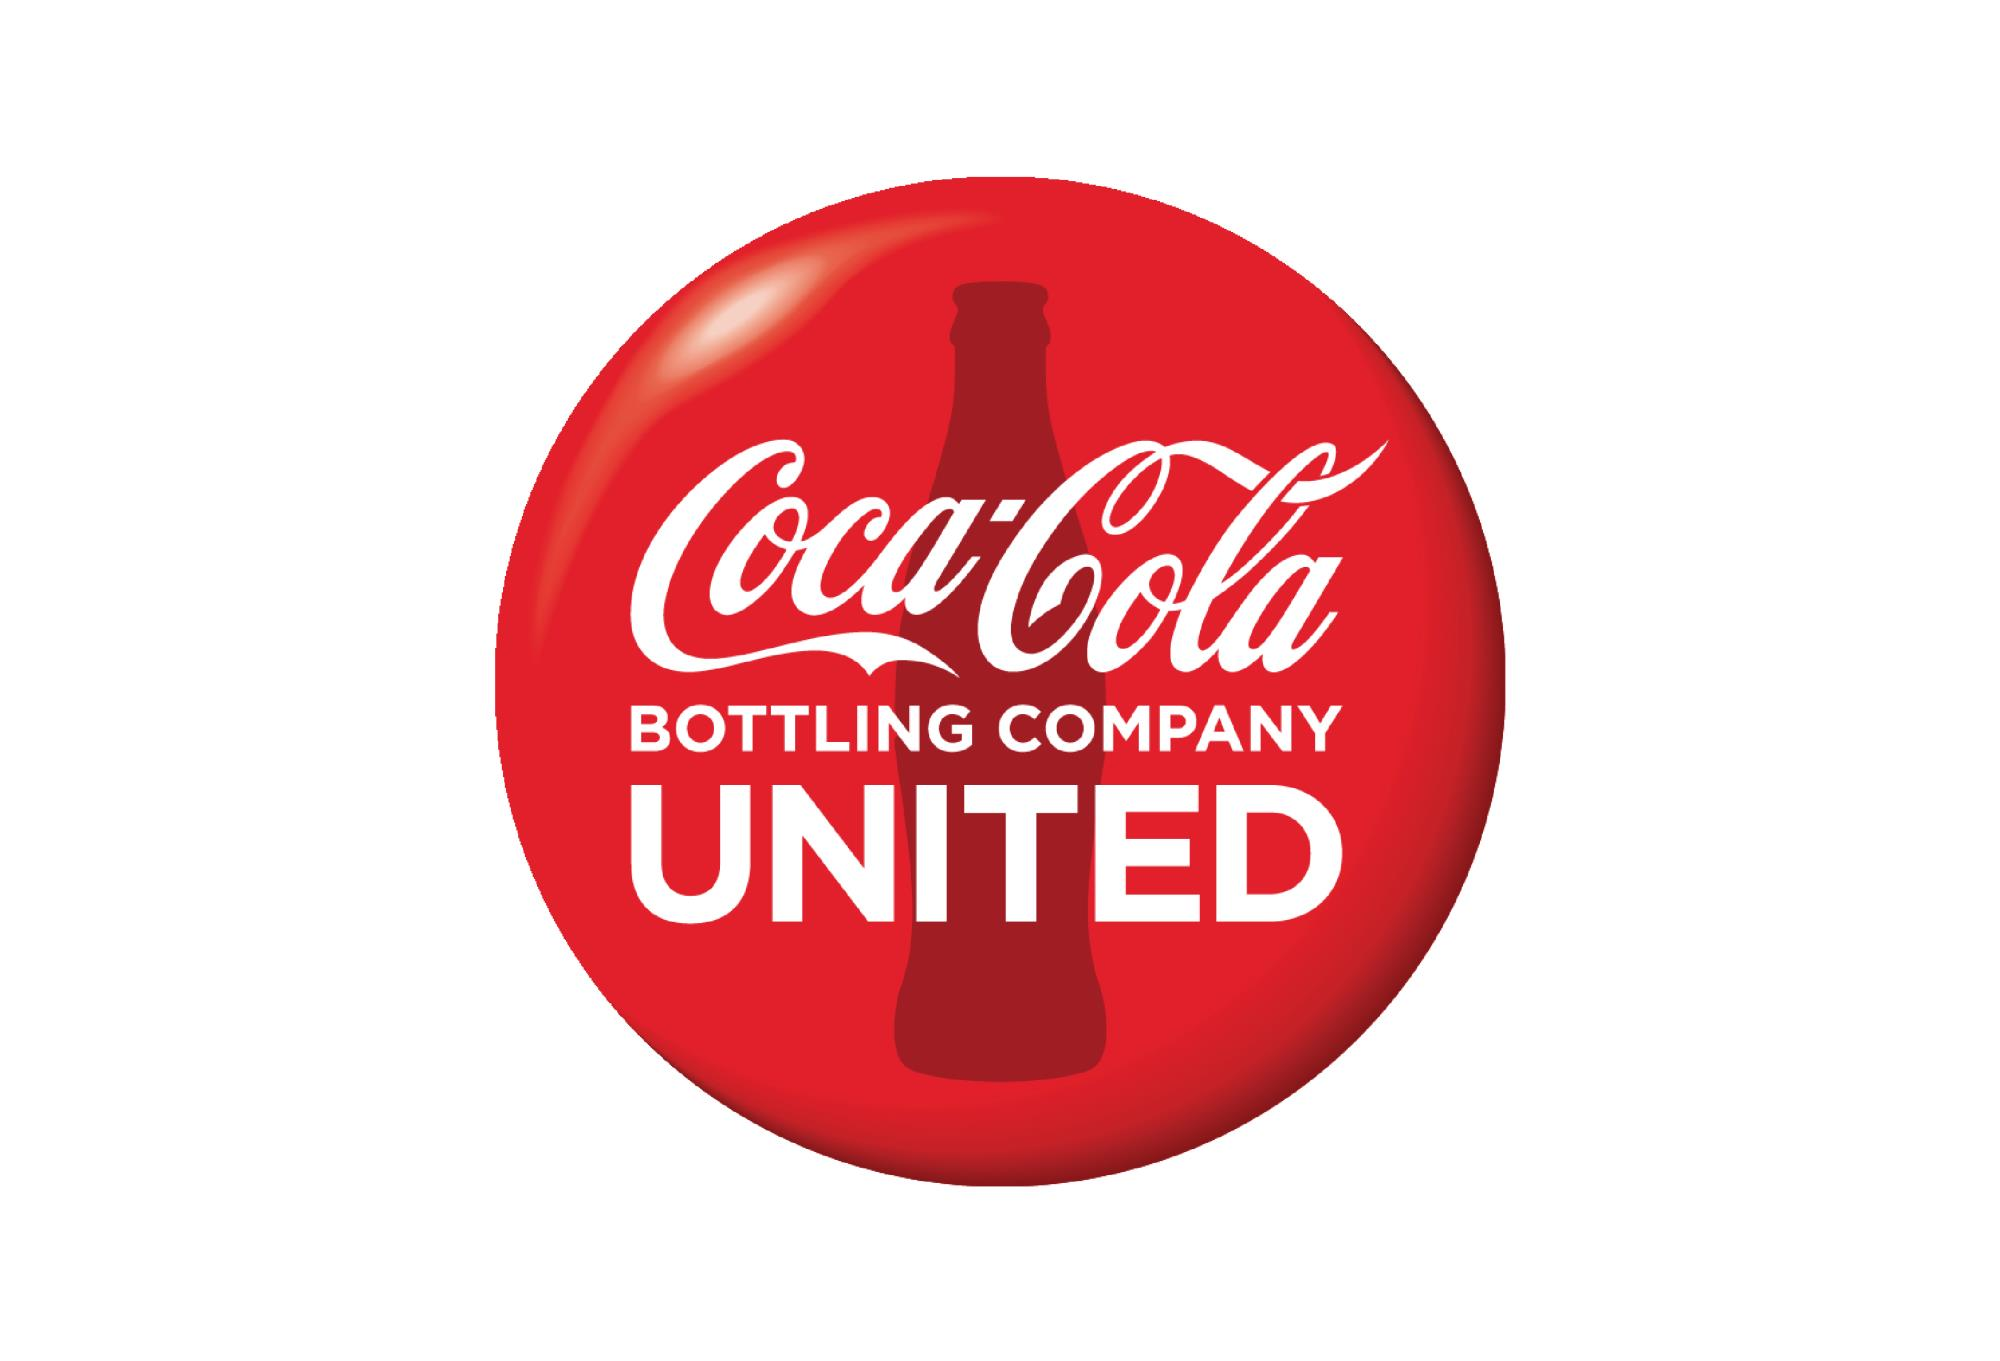 Increased Activity for Coca-Cola UNITED at Mason Road Facility